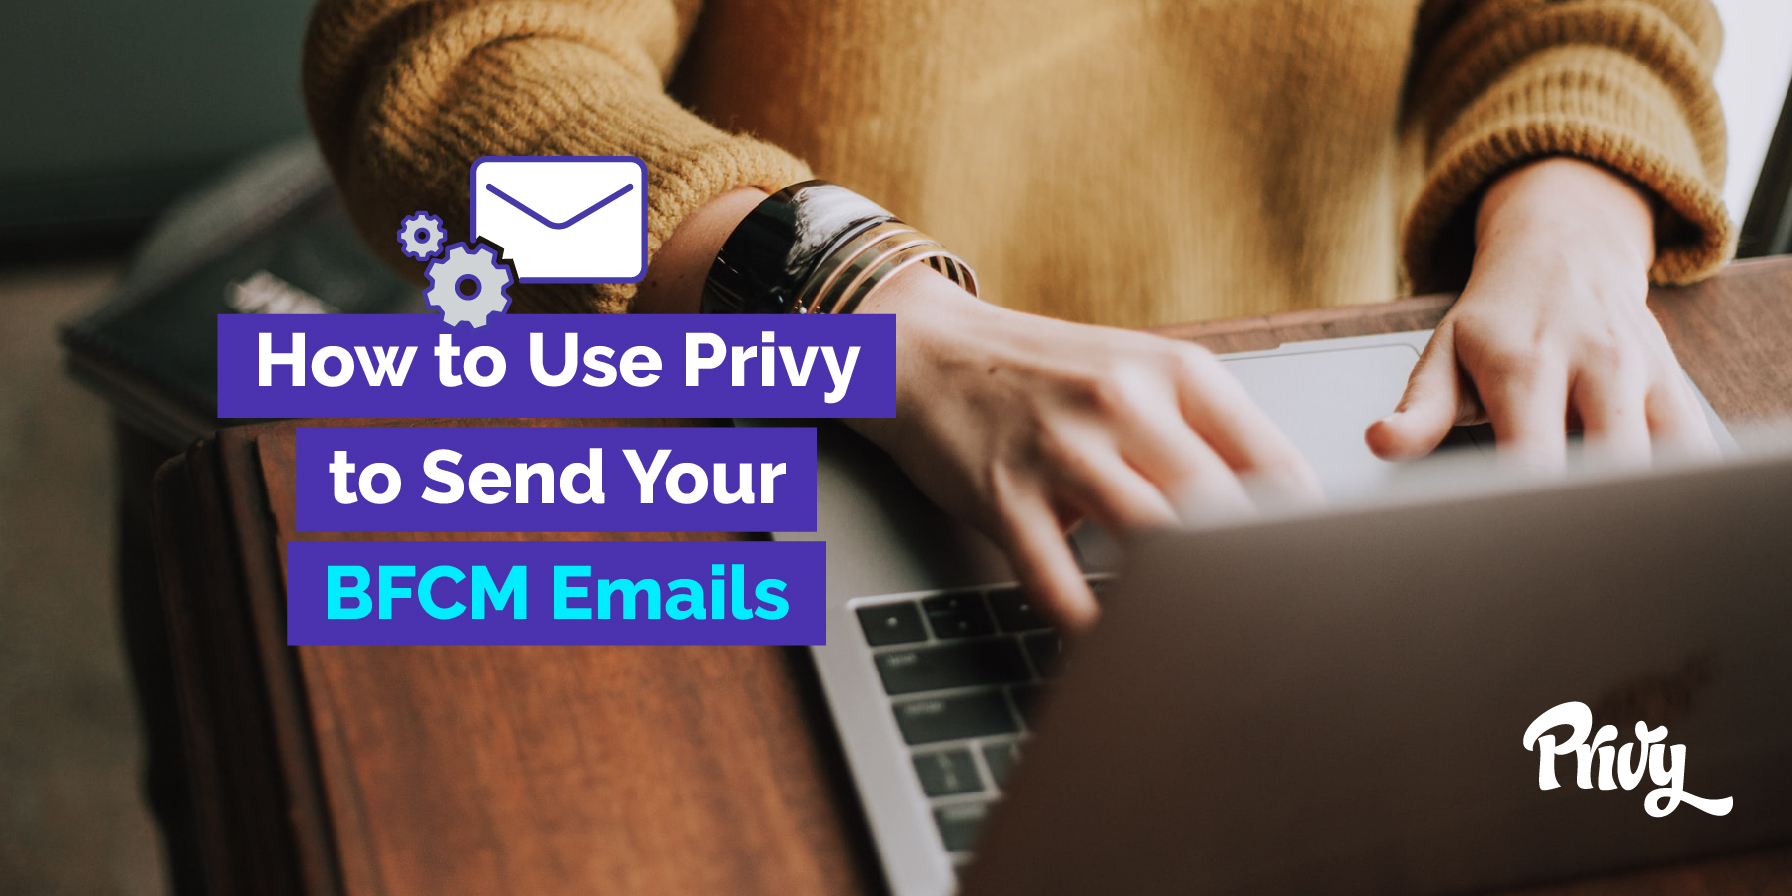 BFCM-Email-How-To